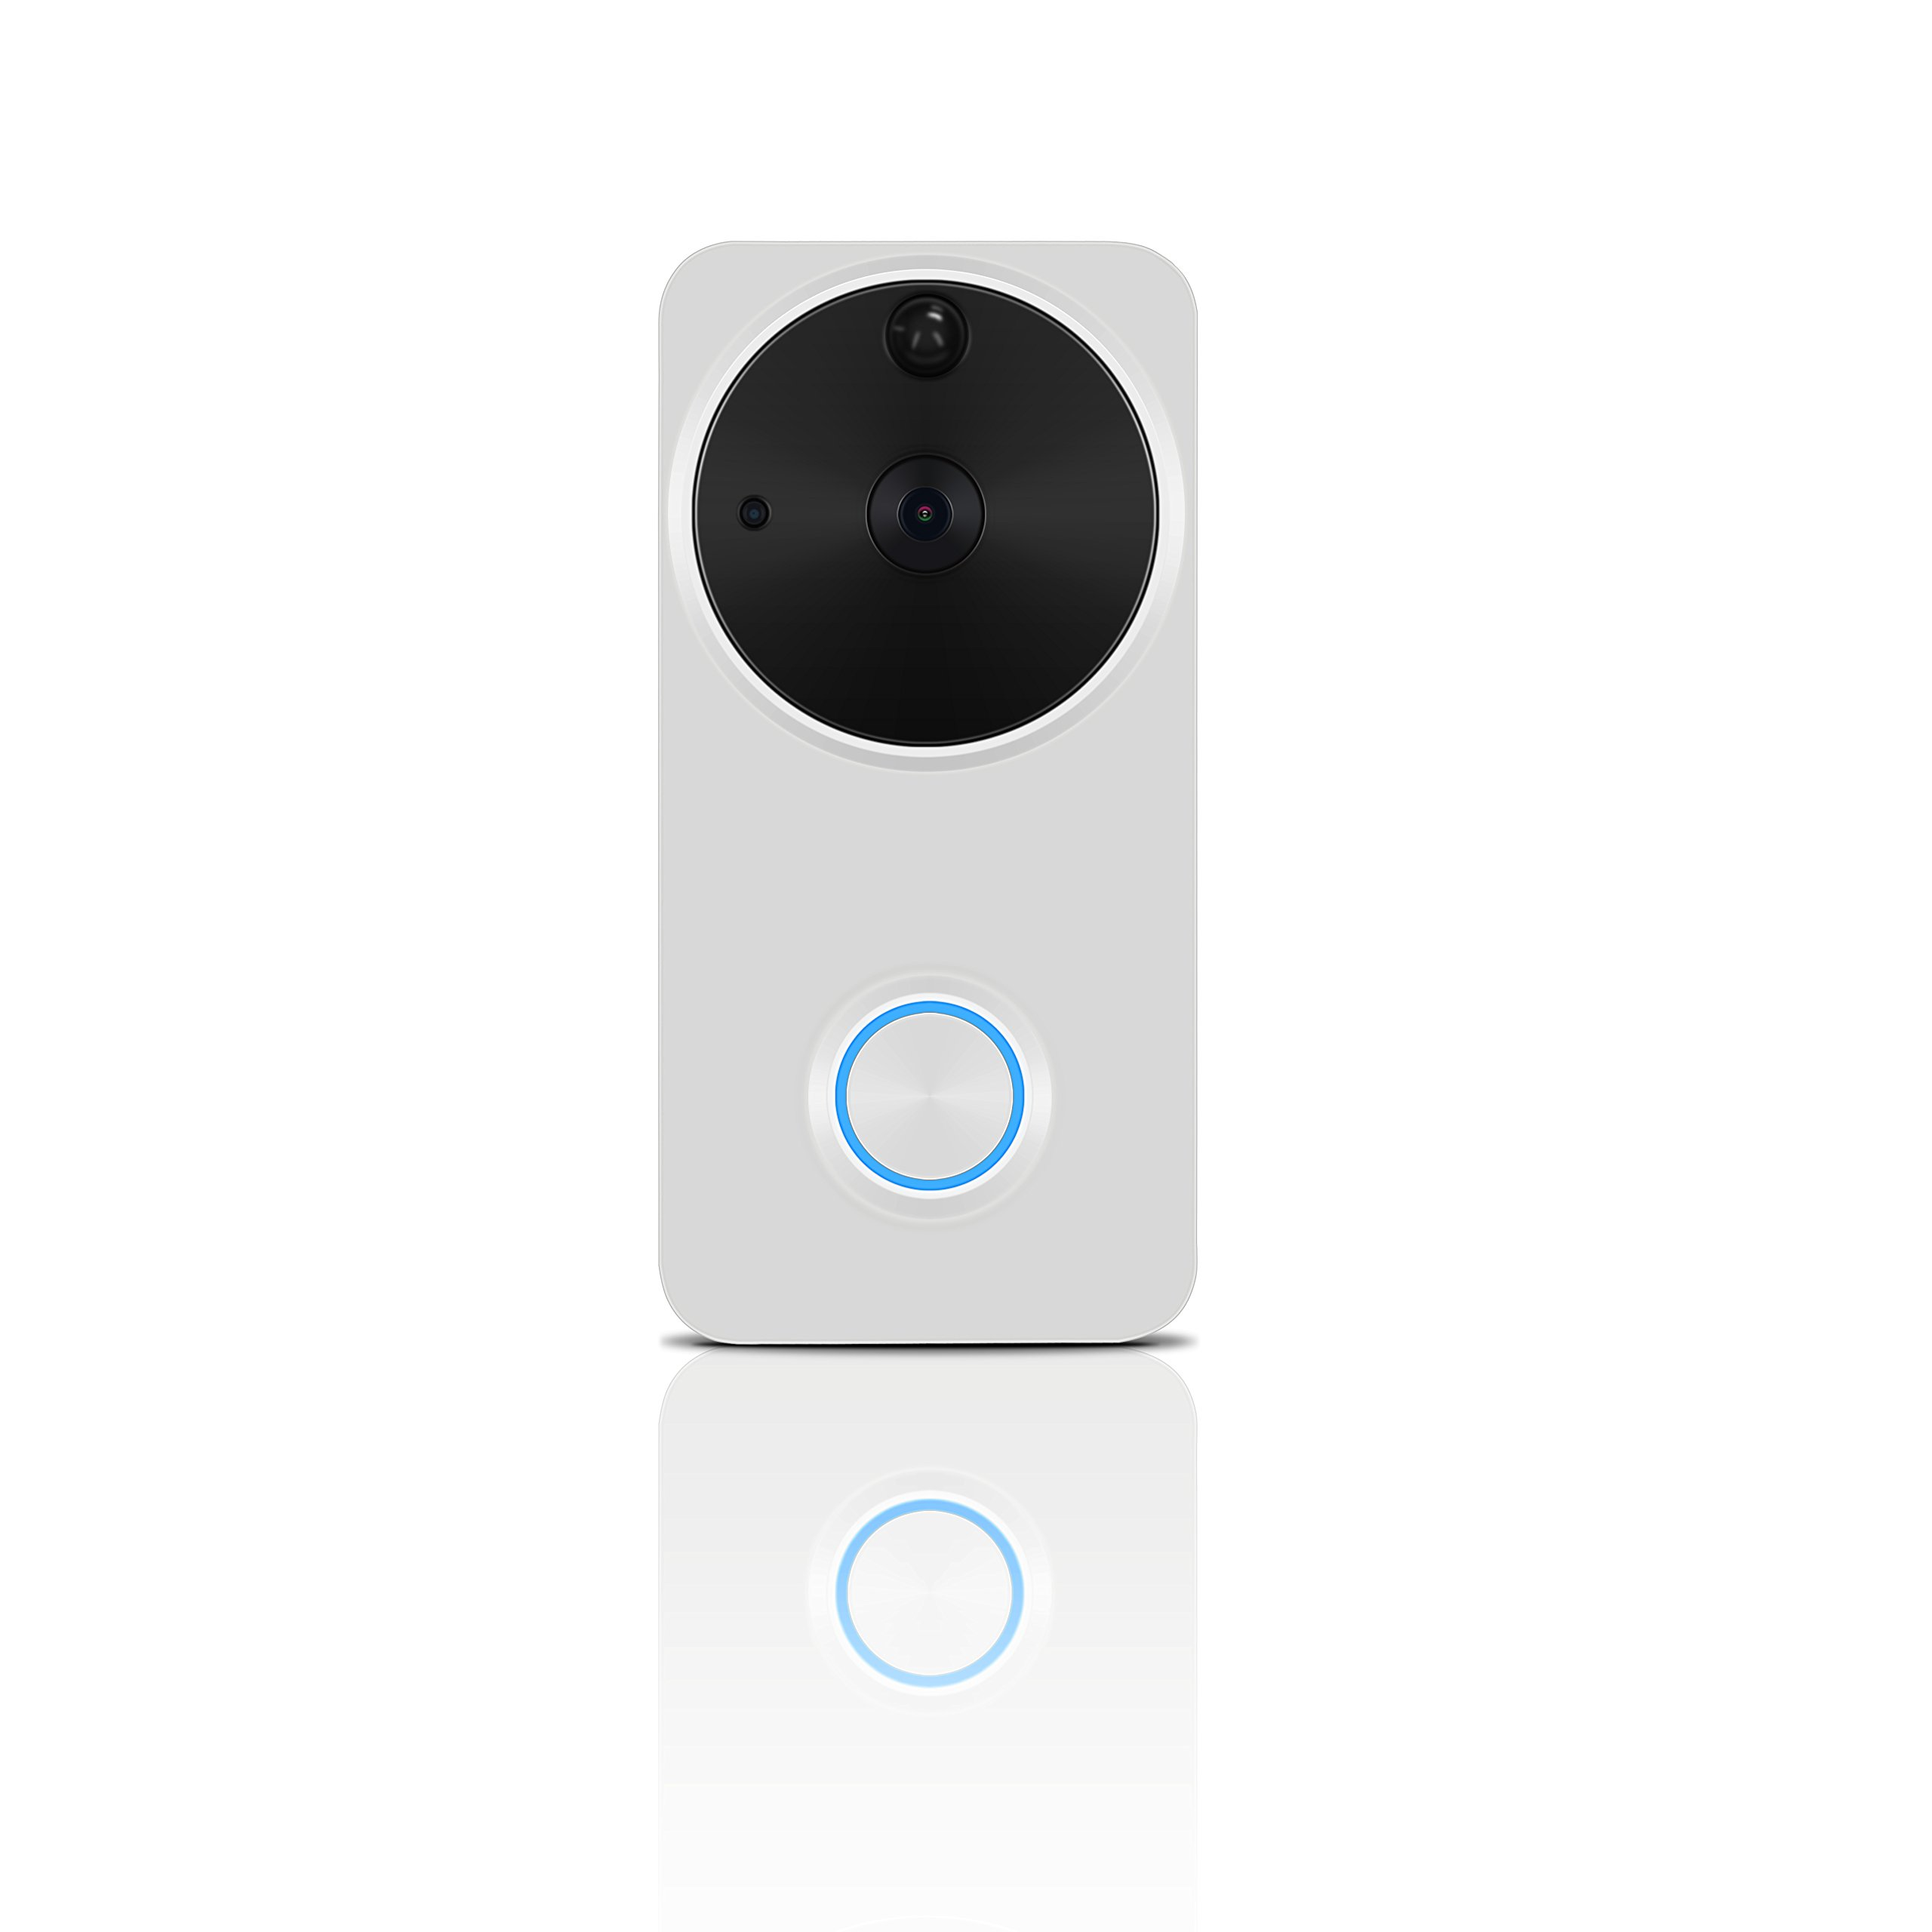 Video Doorbell Wireless - HEIHEI WiFi Smart Door Bell Kit, 720P HD Video, 2-Way Audio, Motion Detection, IR Night Version, Waterproof Home Camera W/2-Battery Built in 16G Card for IOS/Android - White by HEIHEI (Image #9)